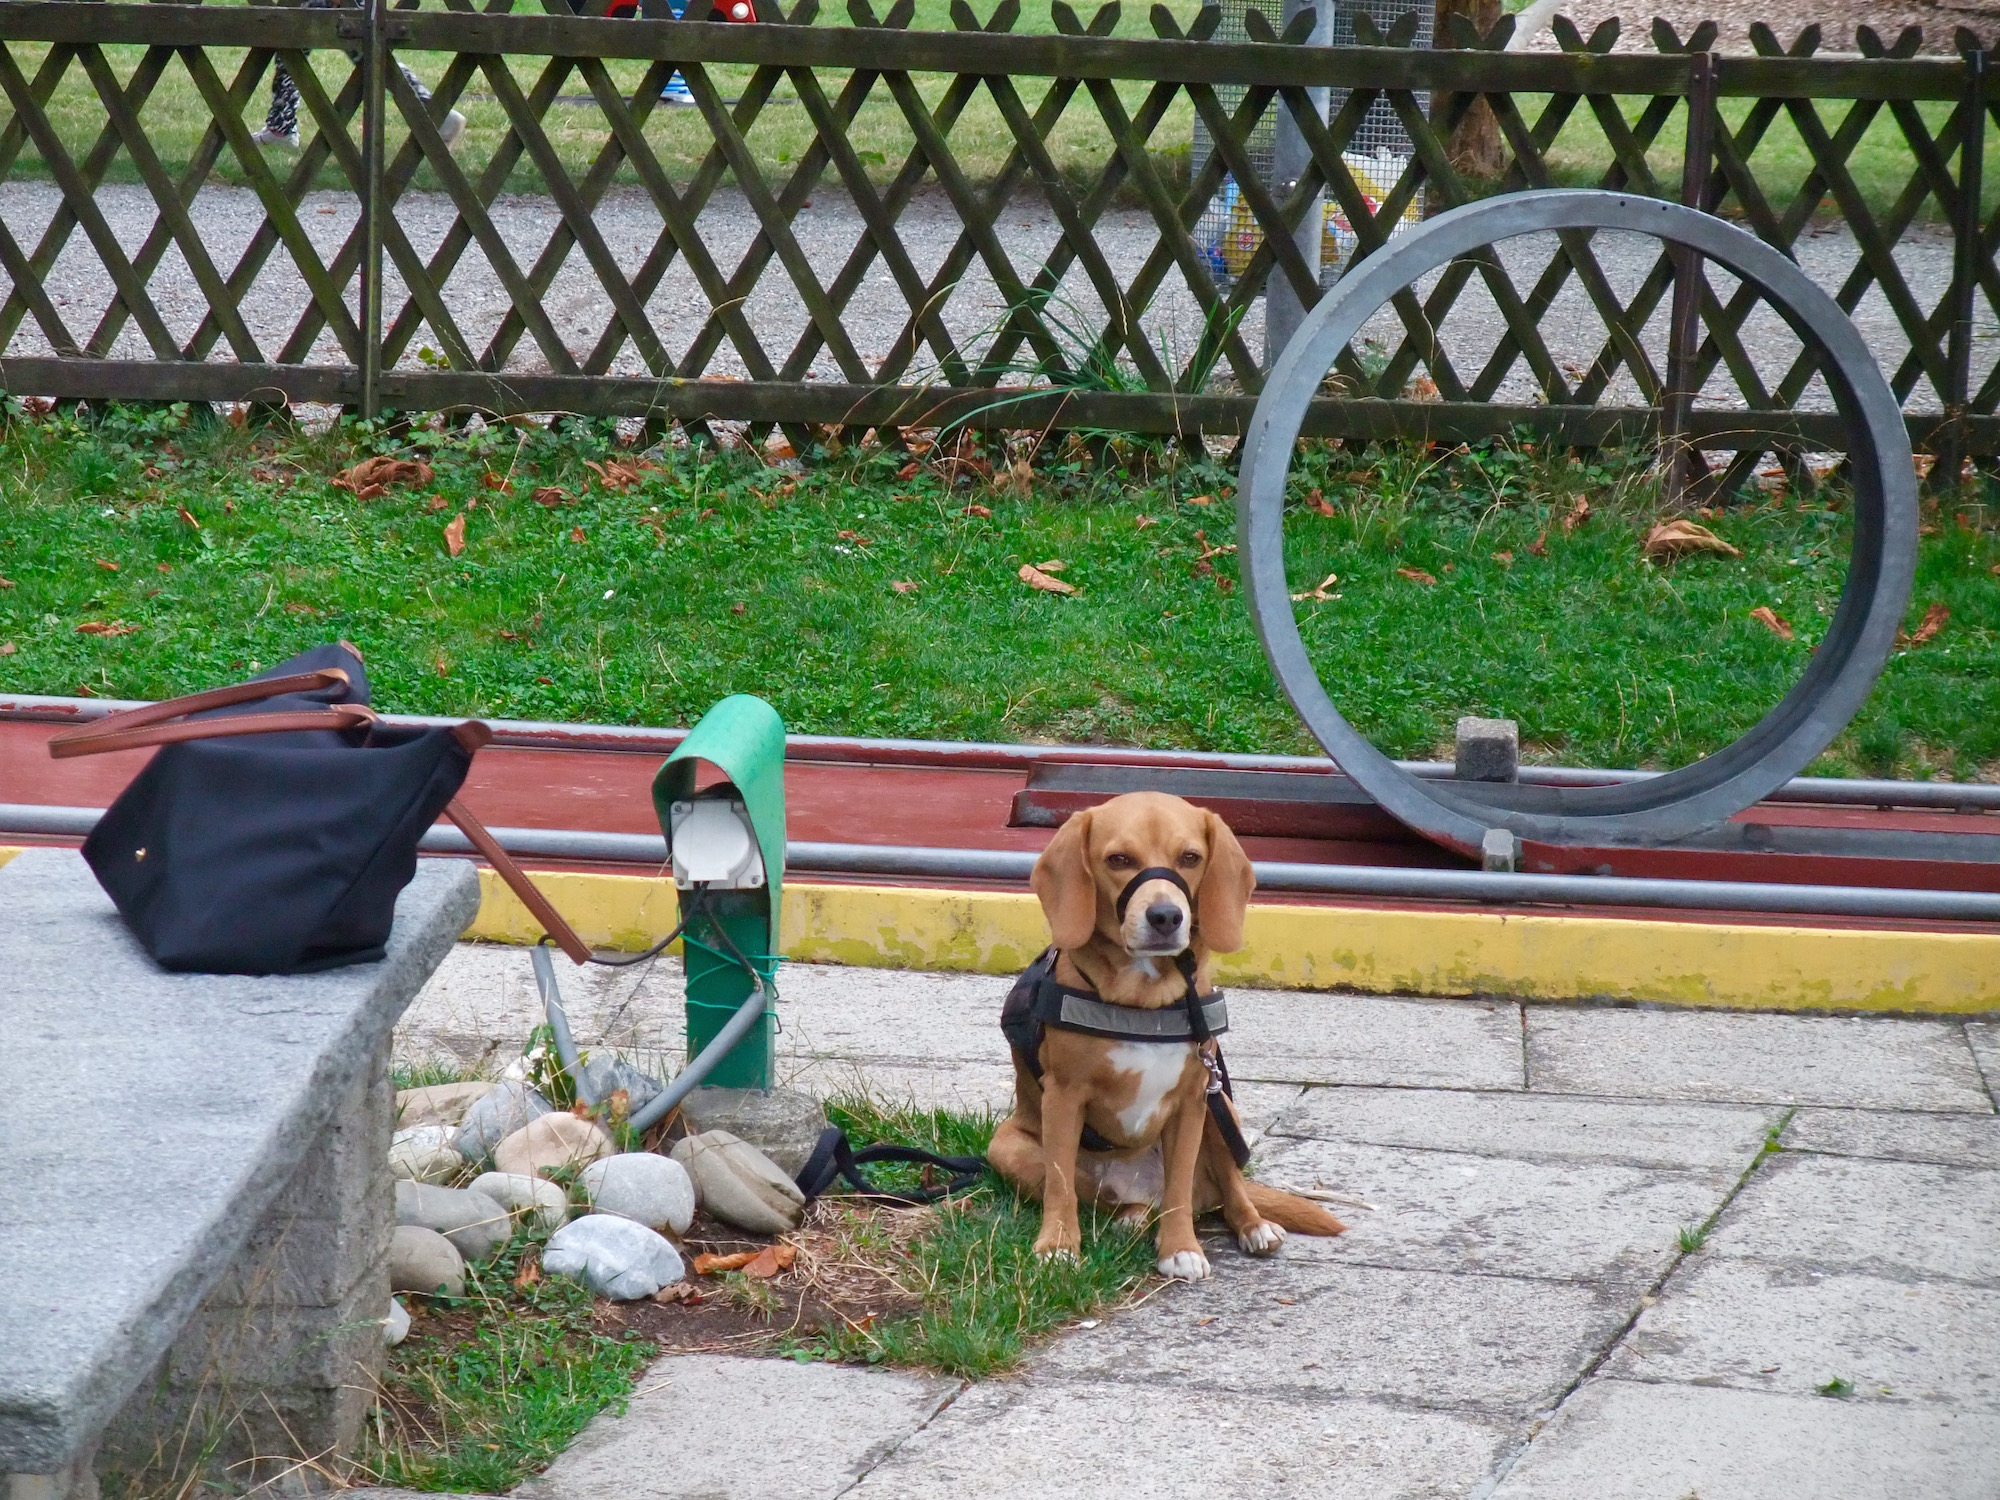 Leo watching my bag on the mini-golf course